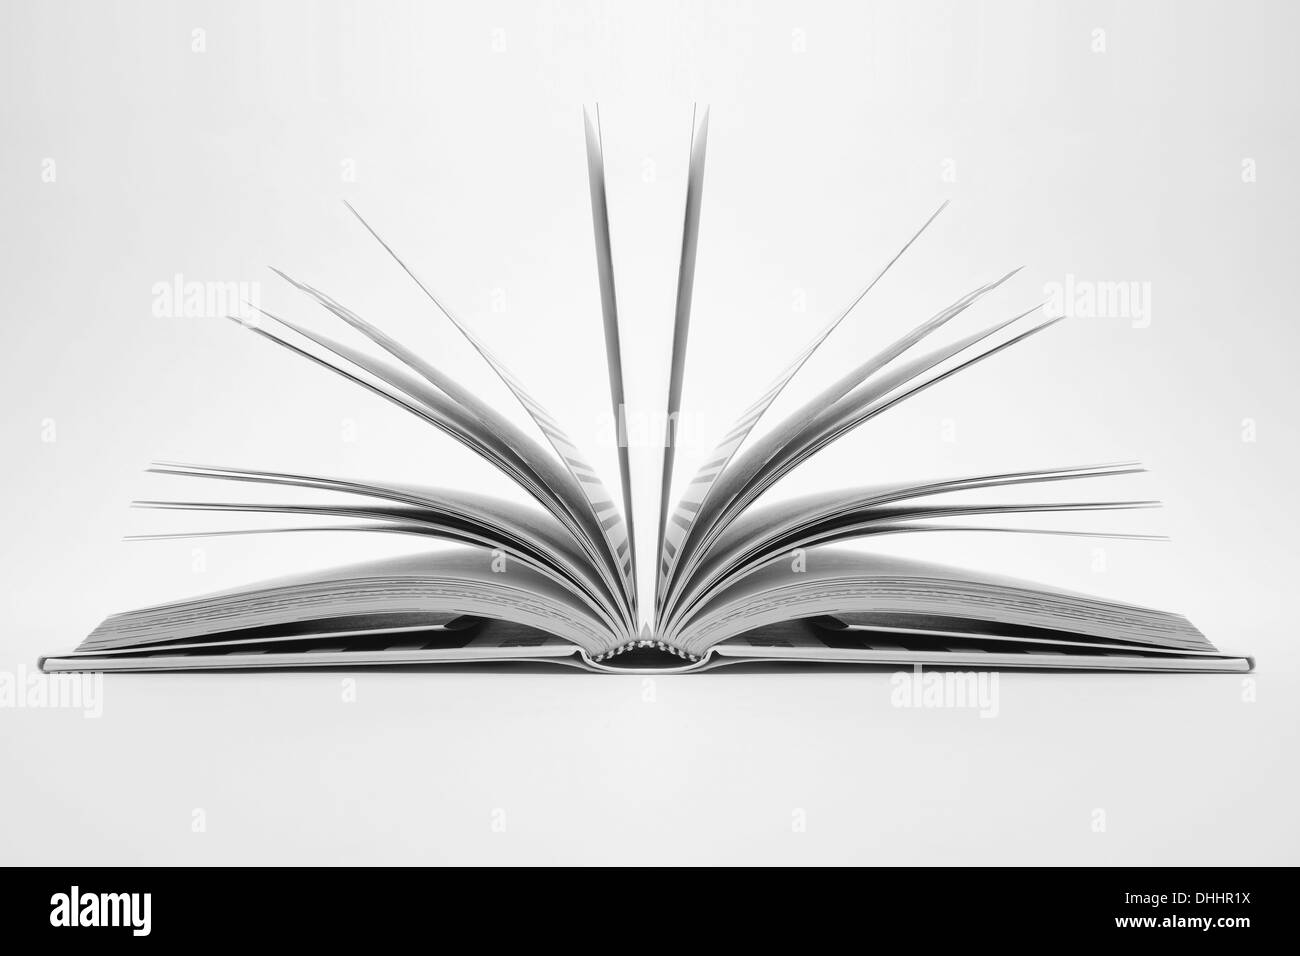 Pages in open book - Stock Image